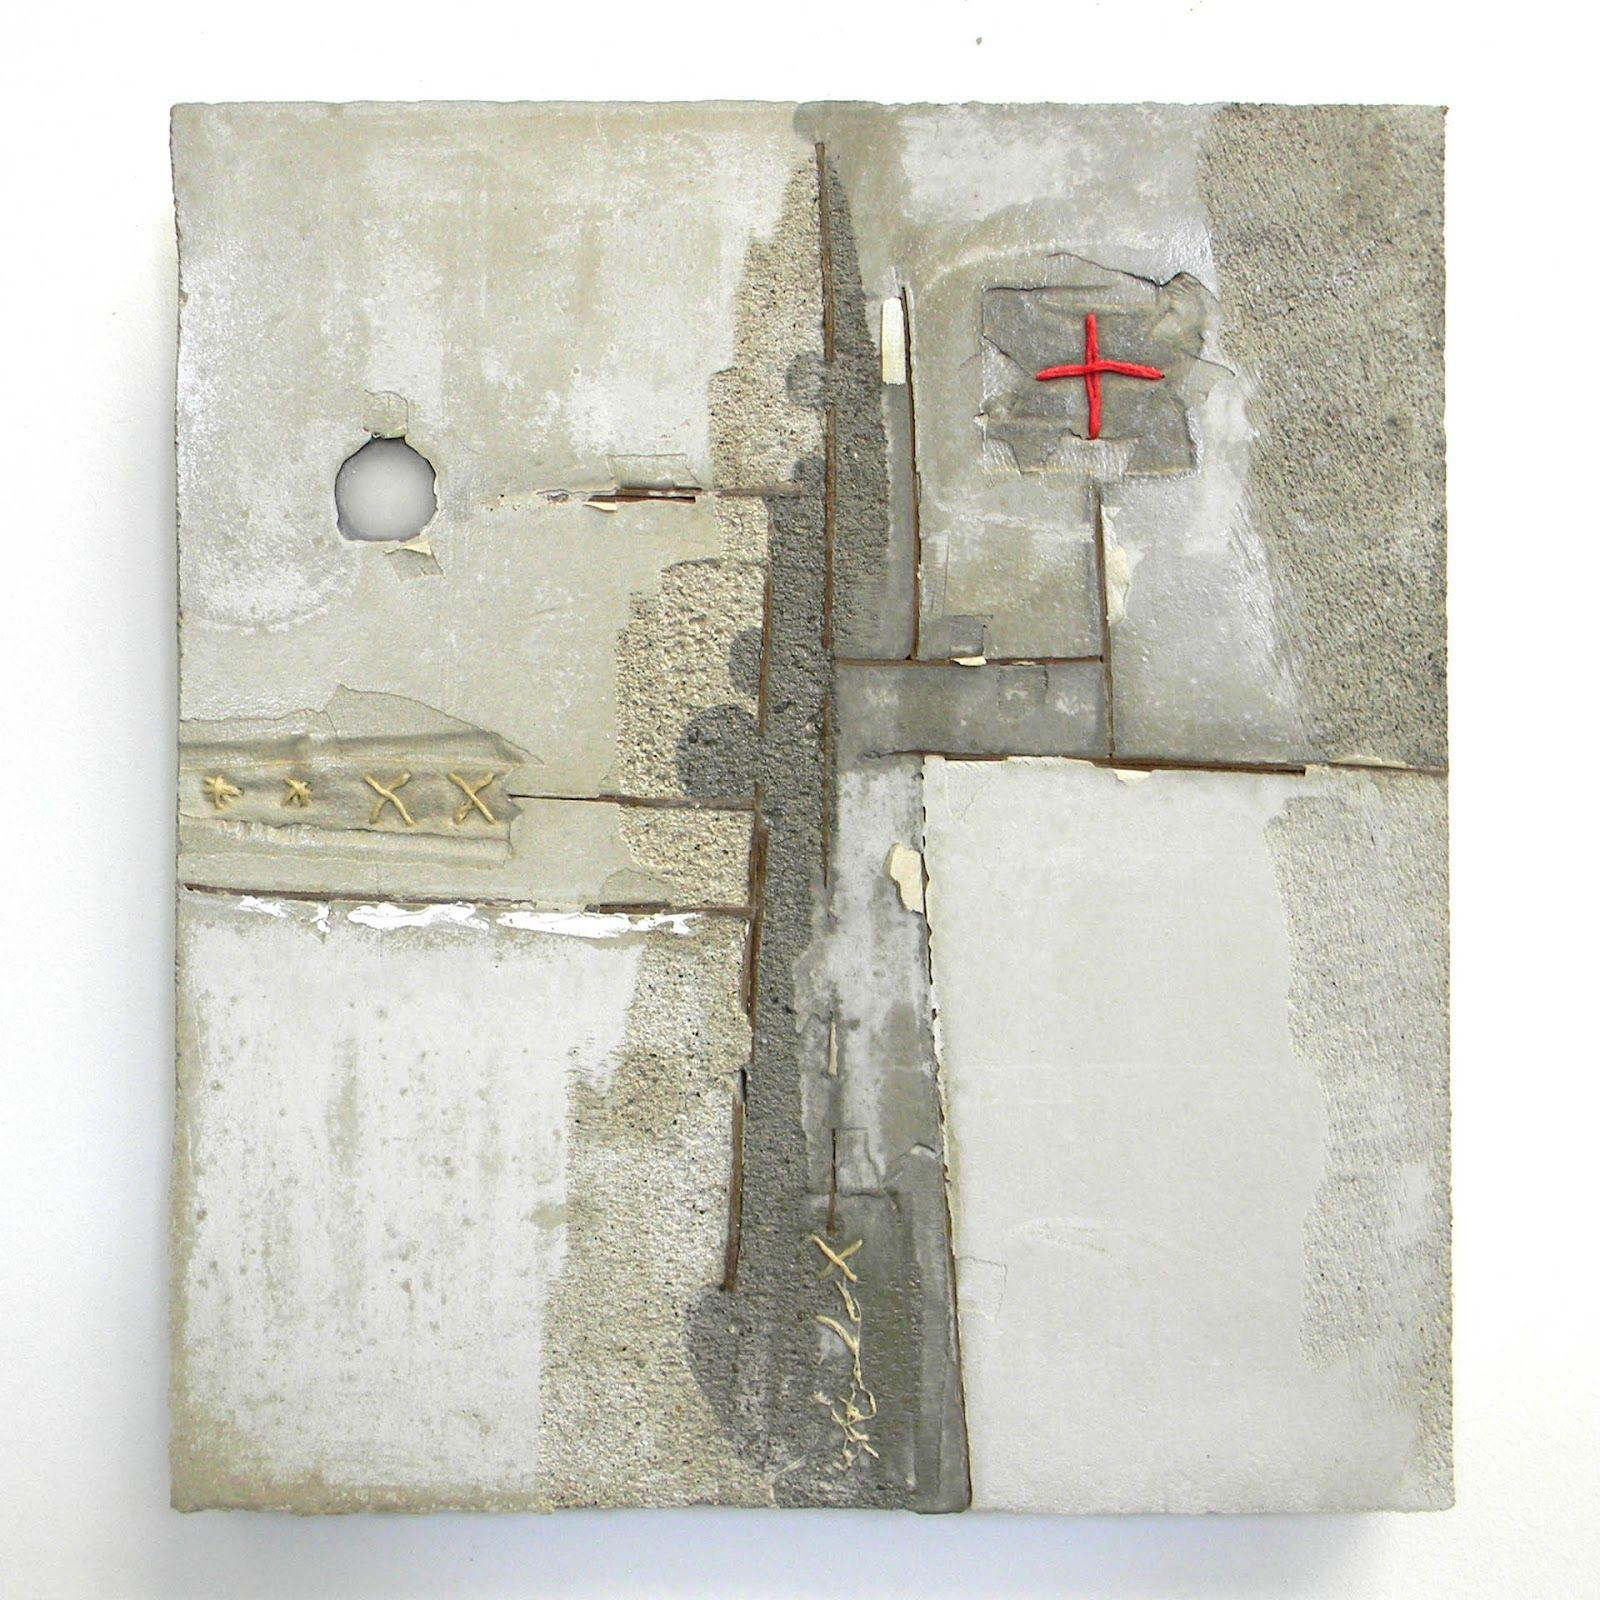 concrete and textile pieces by Dutch artist Marlie Hoevers. Very cool mixed media